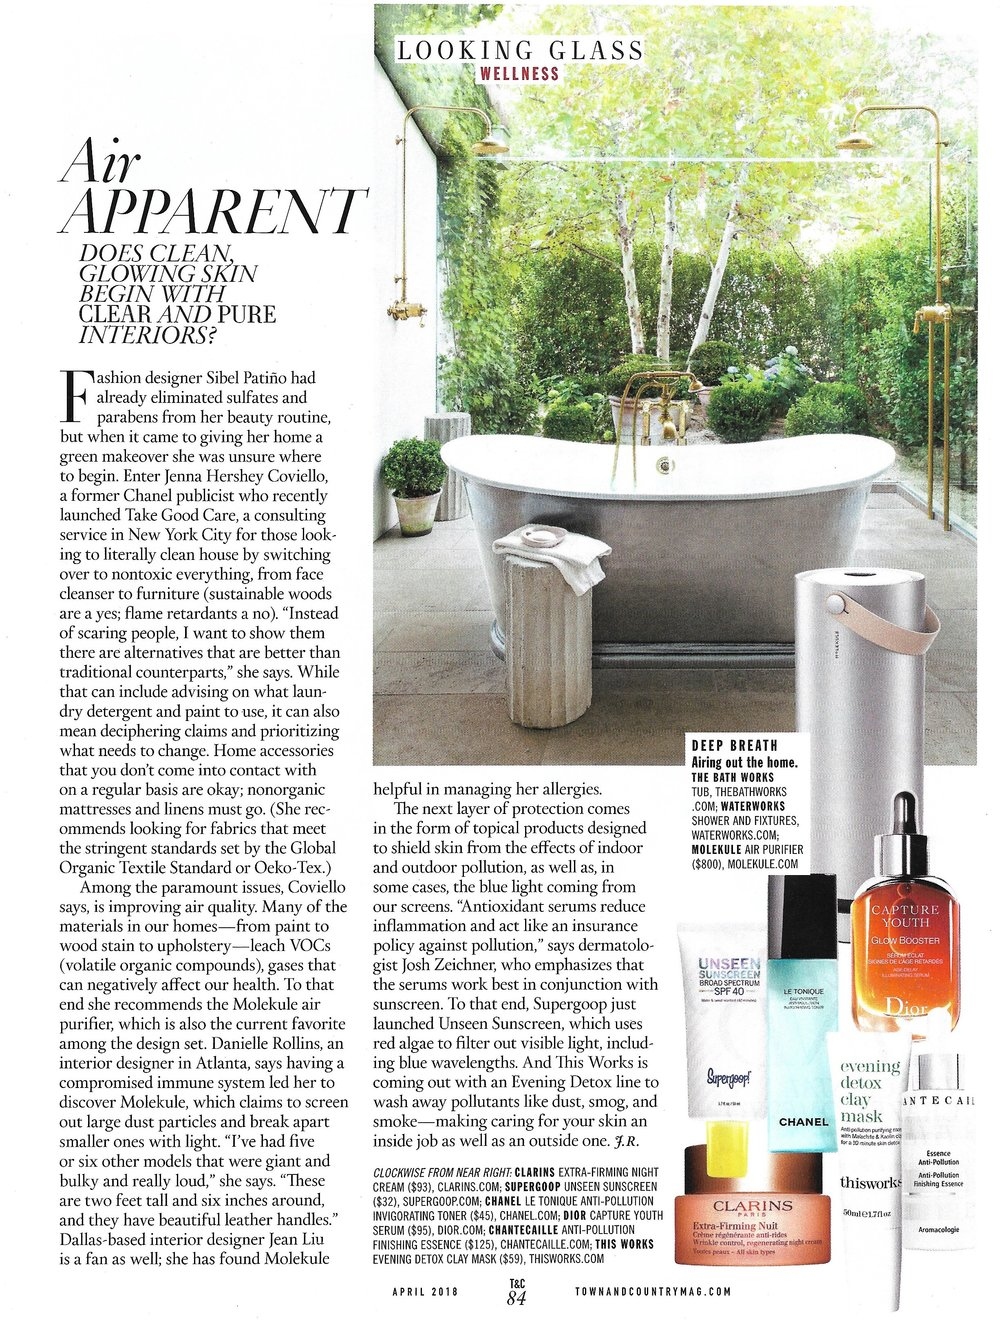 Air Apparent: Does Clean Glowing Skin Begin with Clear and Pure Interiors? - Town & Country April 2018 and  TownandCountryMag.com, March 23, 2018